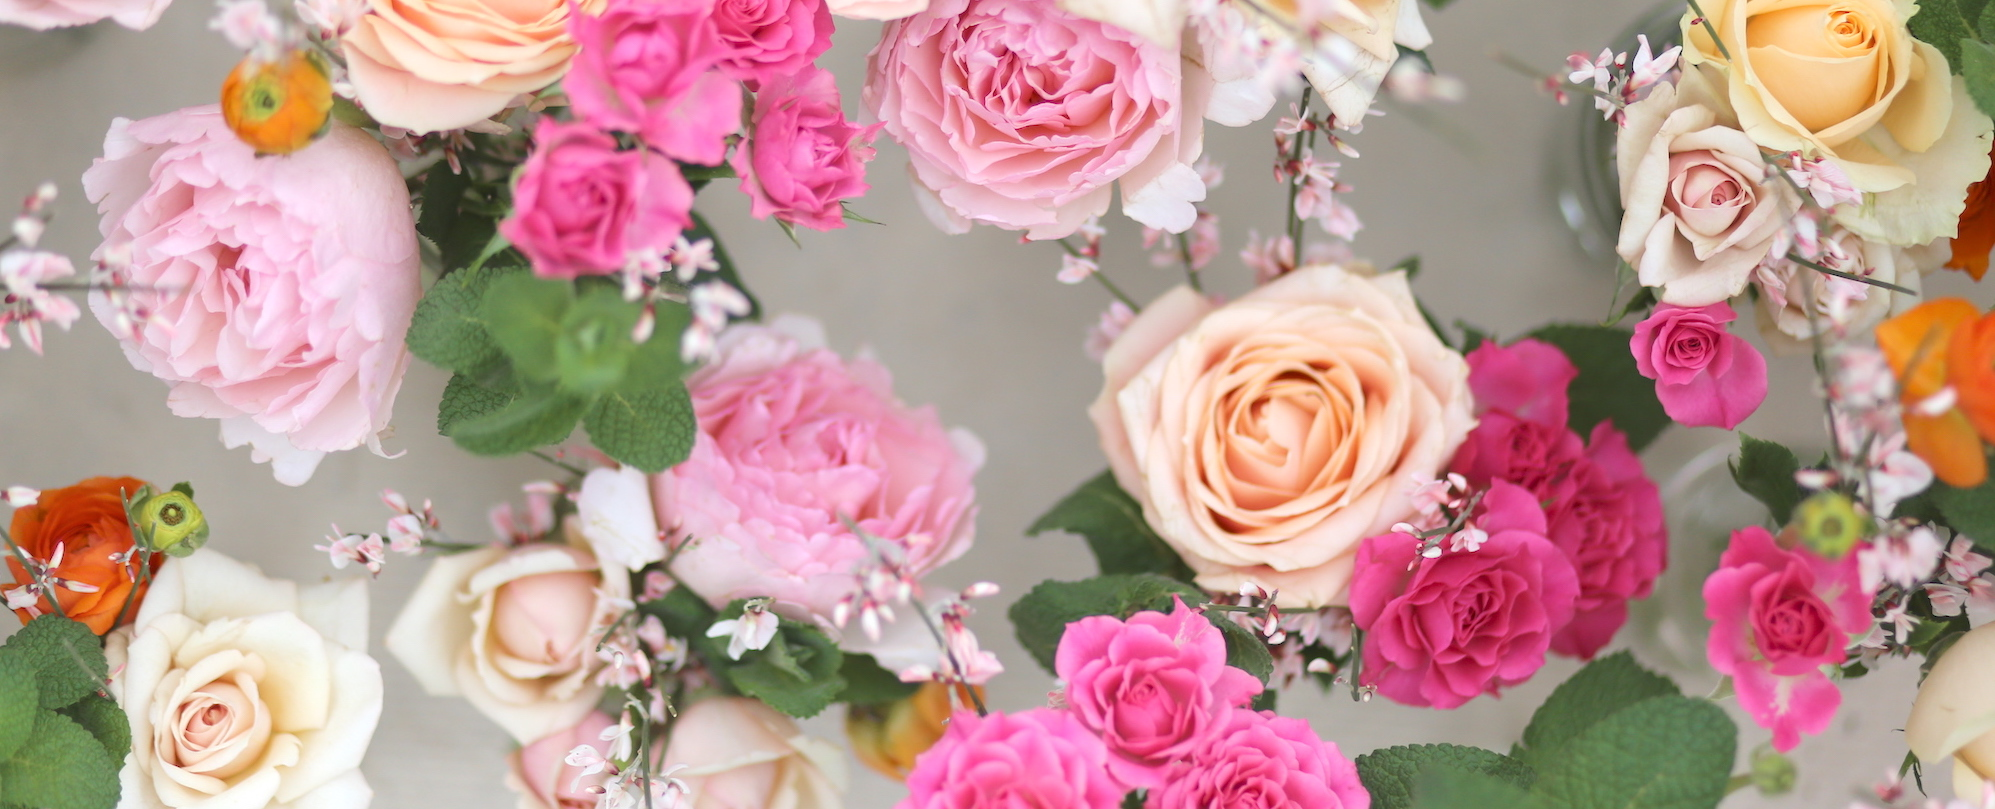 pale pink roses, hot pink spray roses with peach roses and orange ranunculus for a mothers day bouquet